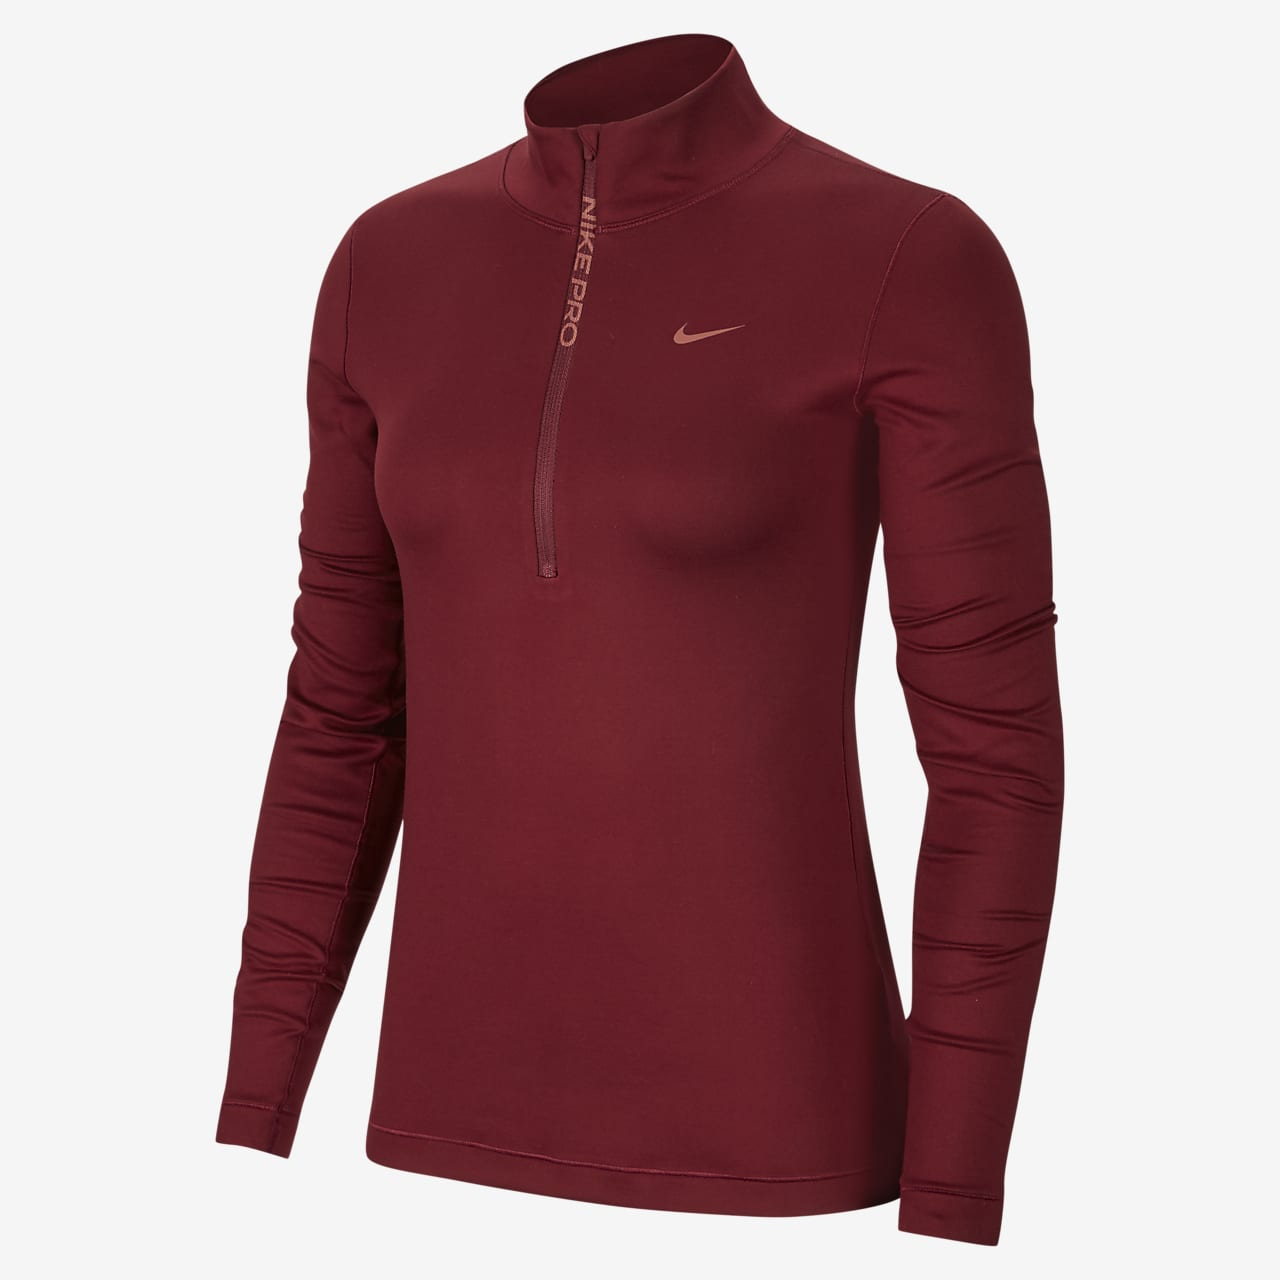 Nike Pro Warm Women's Long-Sleeve 1/2-Zip Top